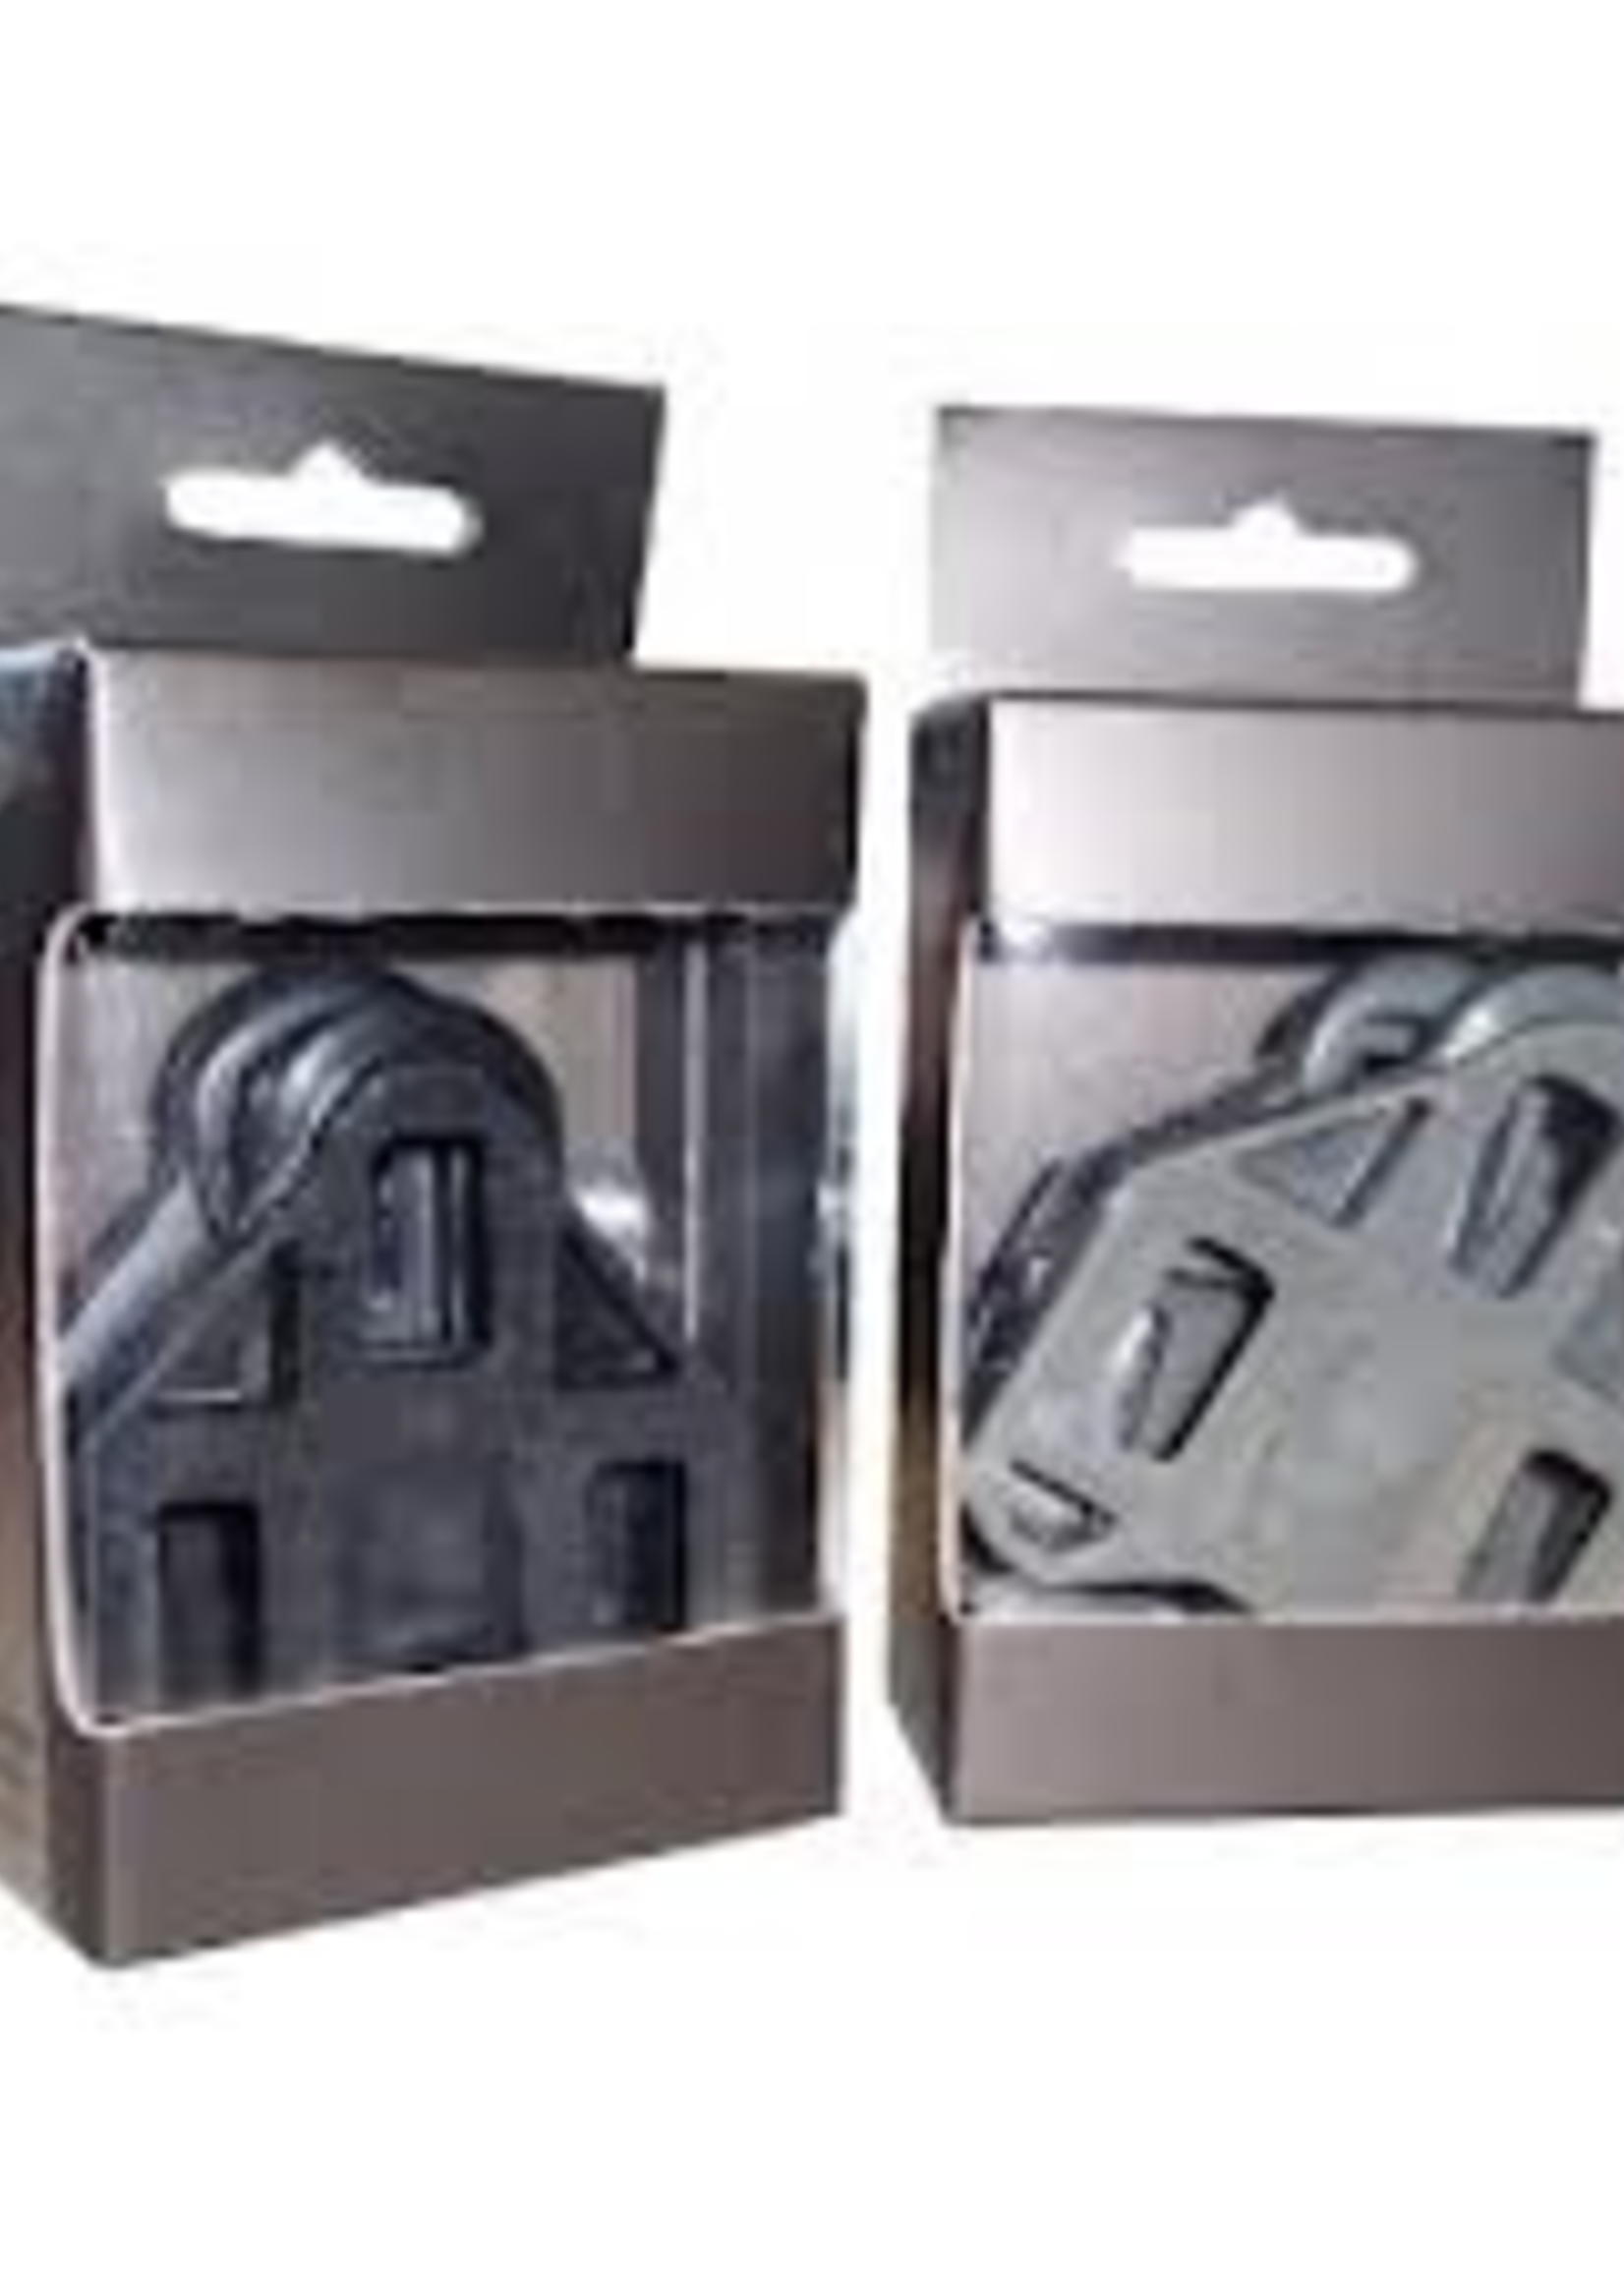 Campagnolo Self-Aligning Cleats For Campagnolo Pro-Fit Pedals